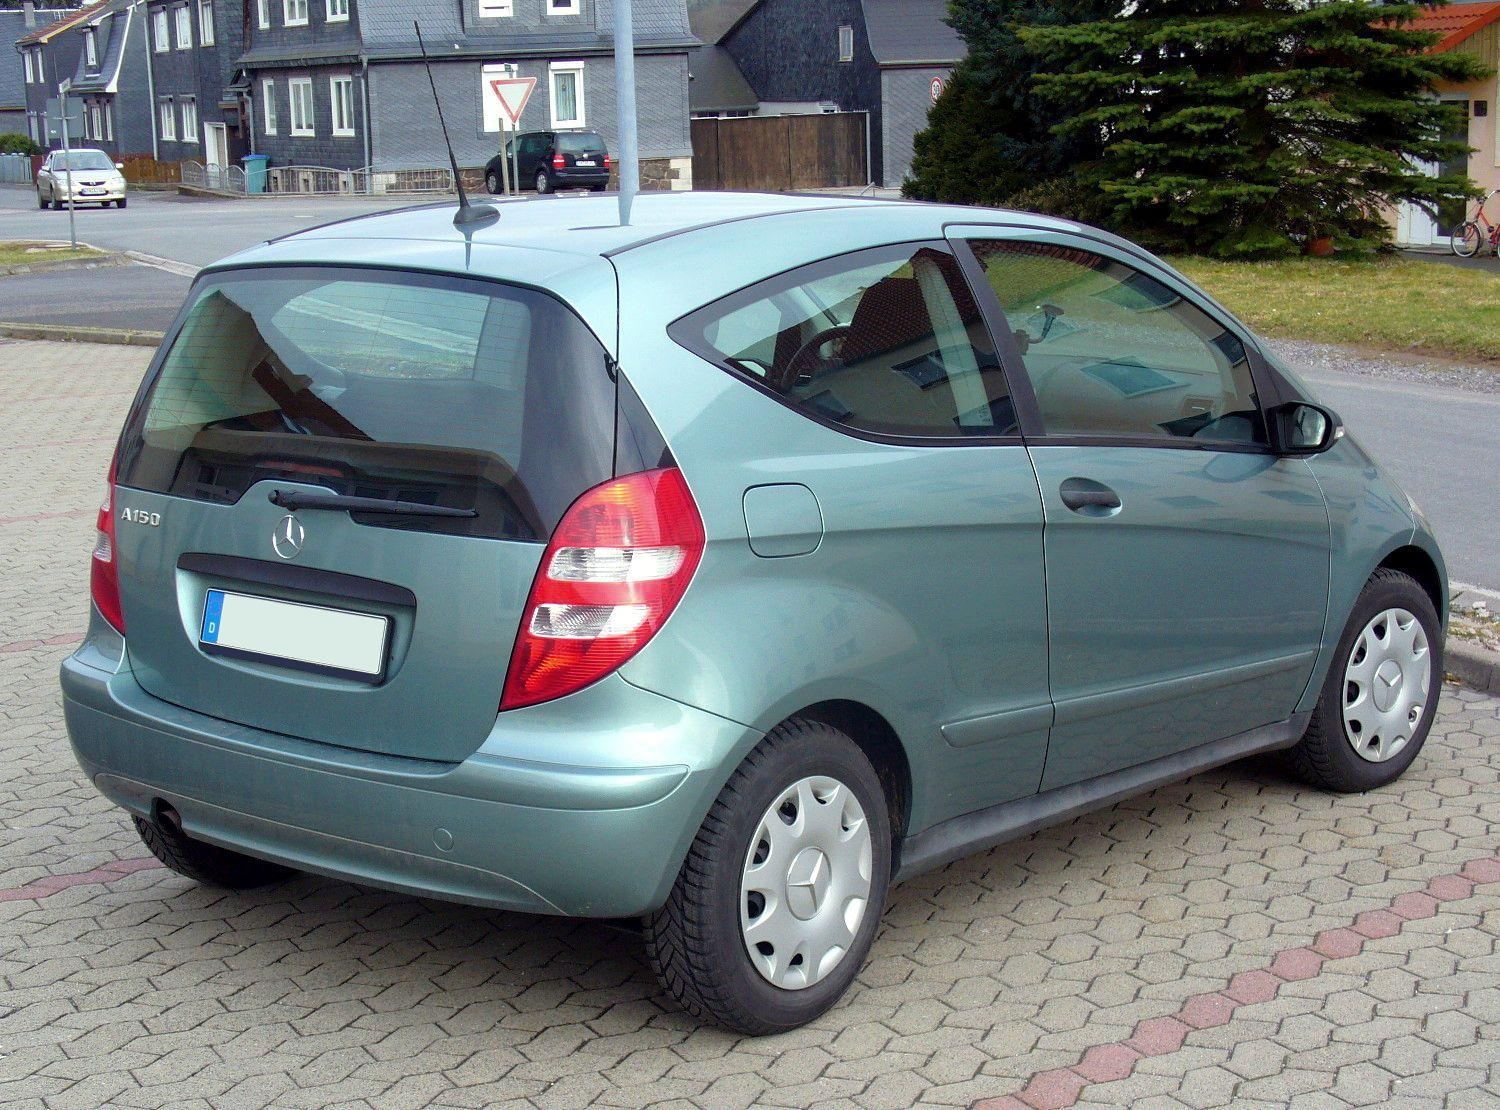 mercedes-benz a 150-pic. 3